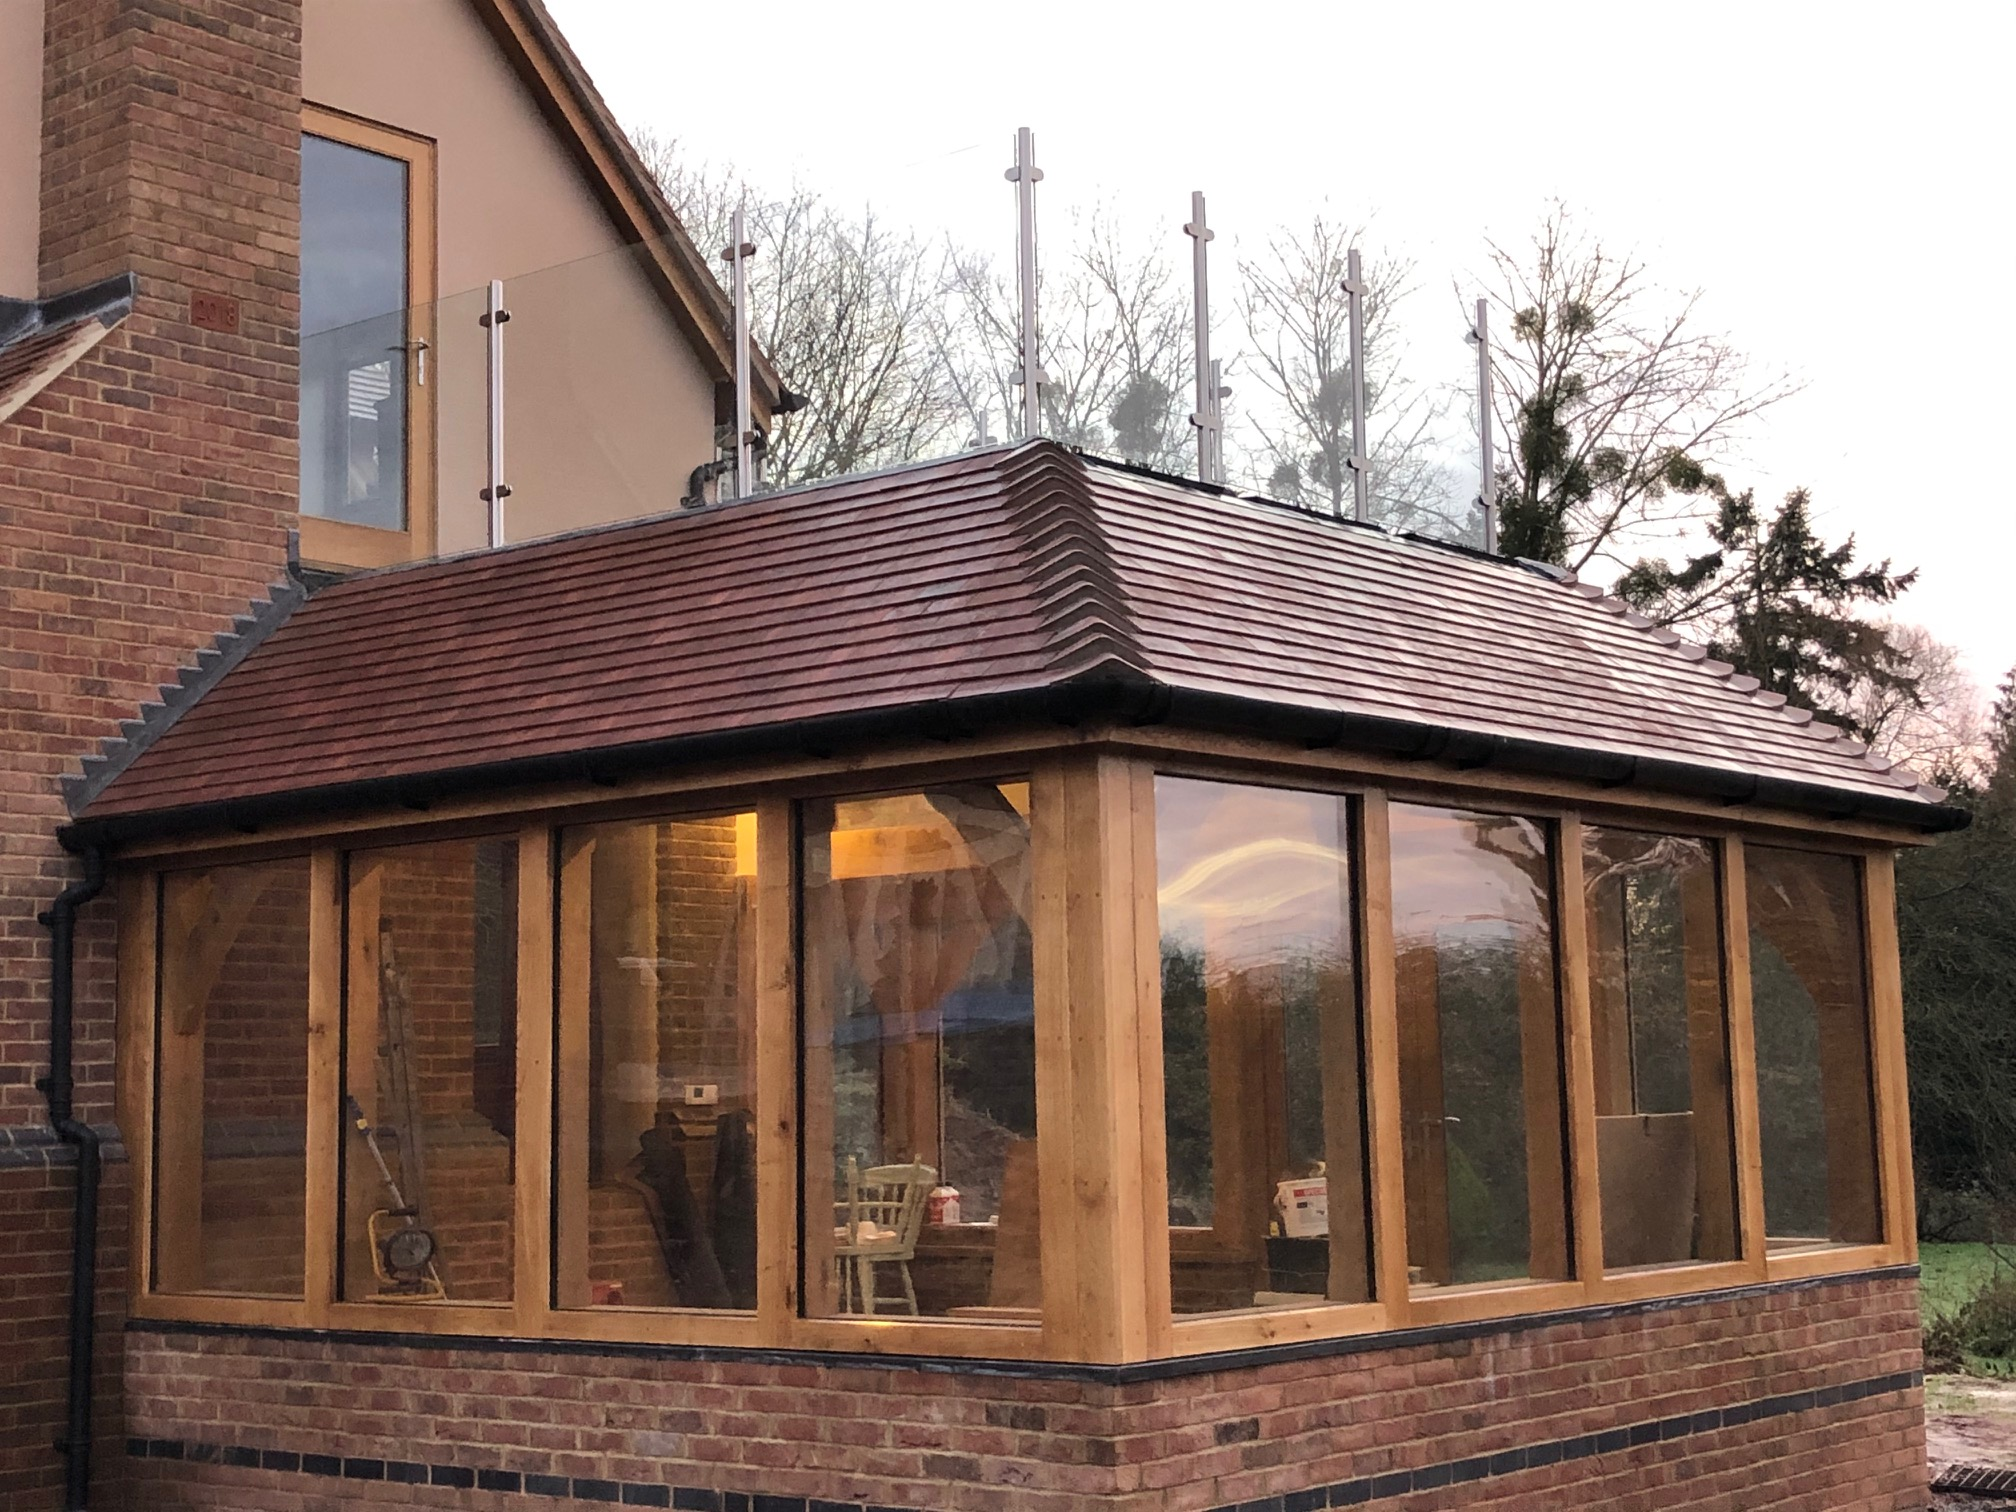 Oak garden room fully glazed.